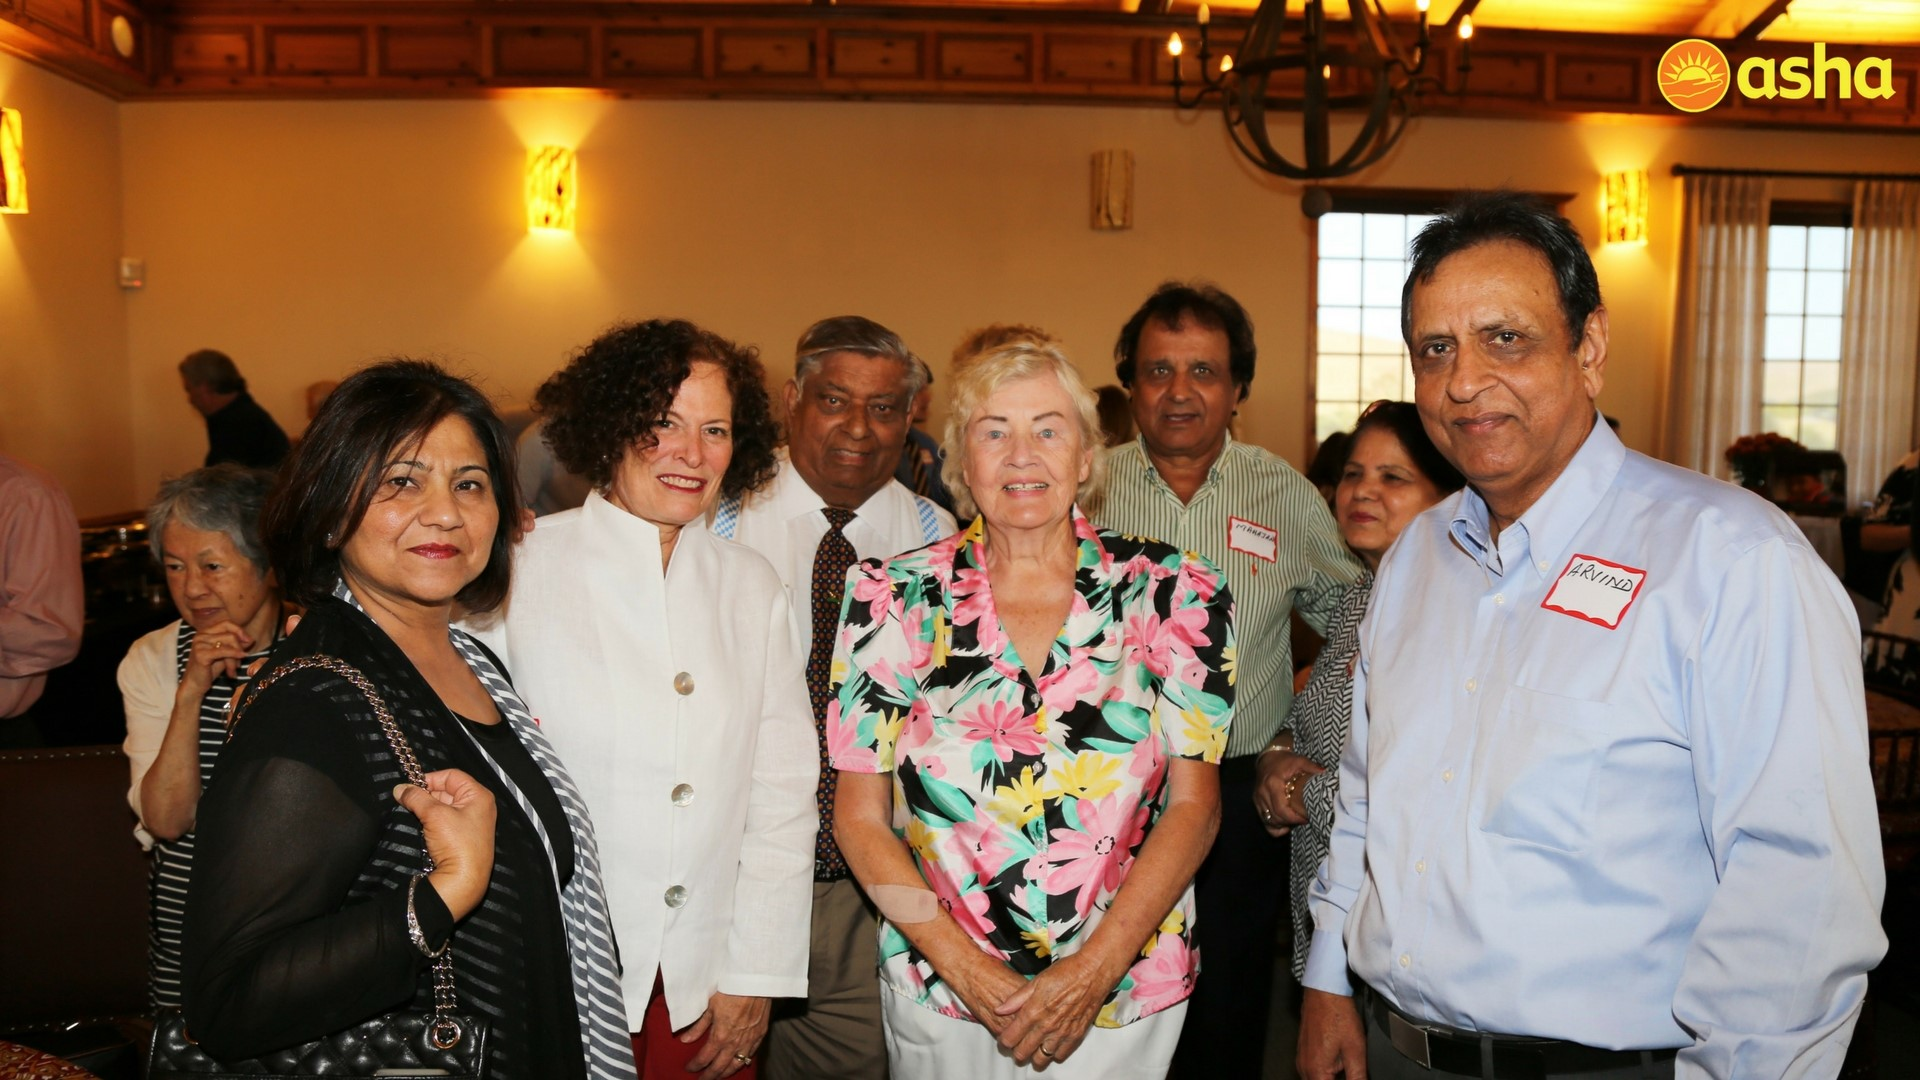 Long time Asha supporters (R-L) Mr Arvind, Gisela Chaudhary and Janet Thompson along with other supporters.